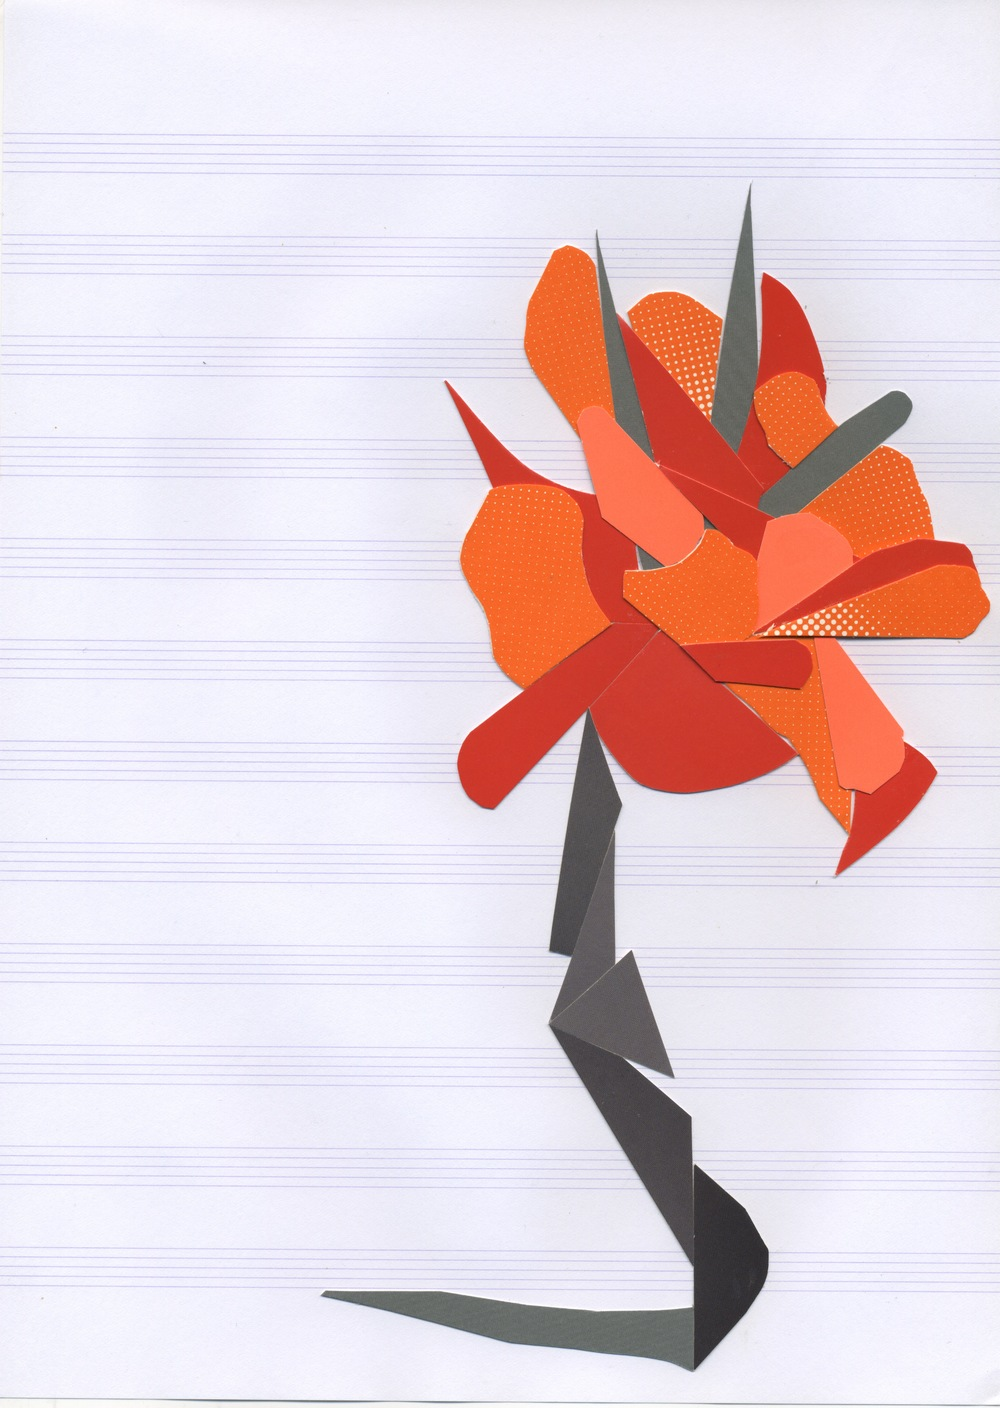 Autoportrait (as poppy), v. 8  Postcard stock on music paper 11.7 x 8.3 inches, 2011